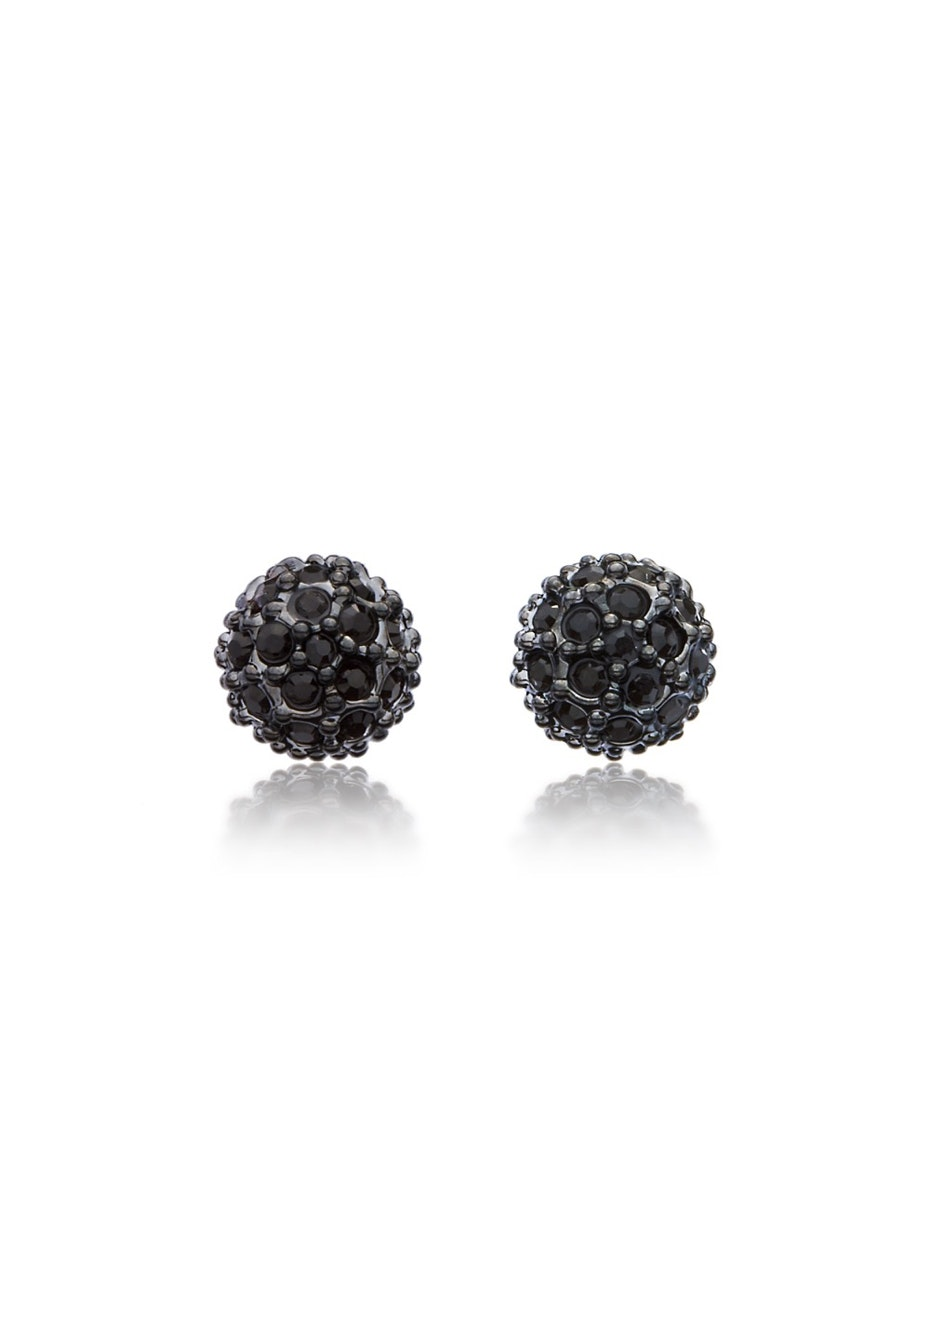 Encrusted Pave Stud Earrings Embellished with Crystals from Swarovski